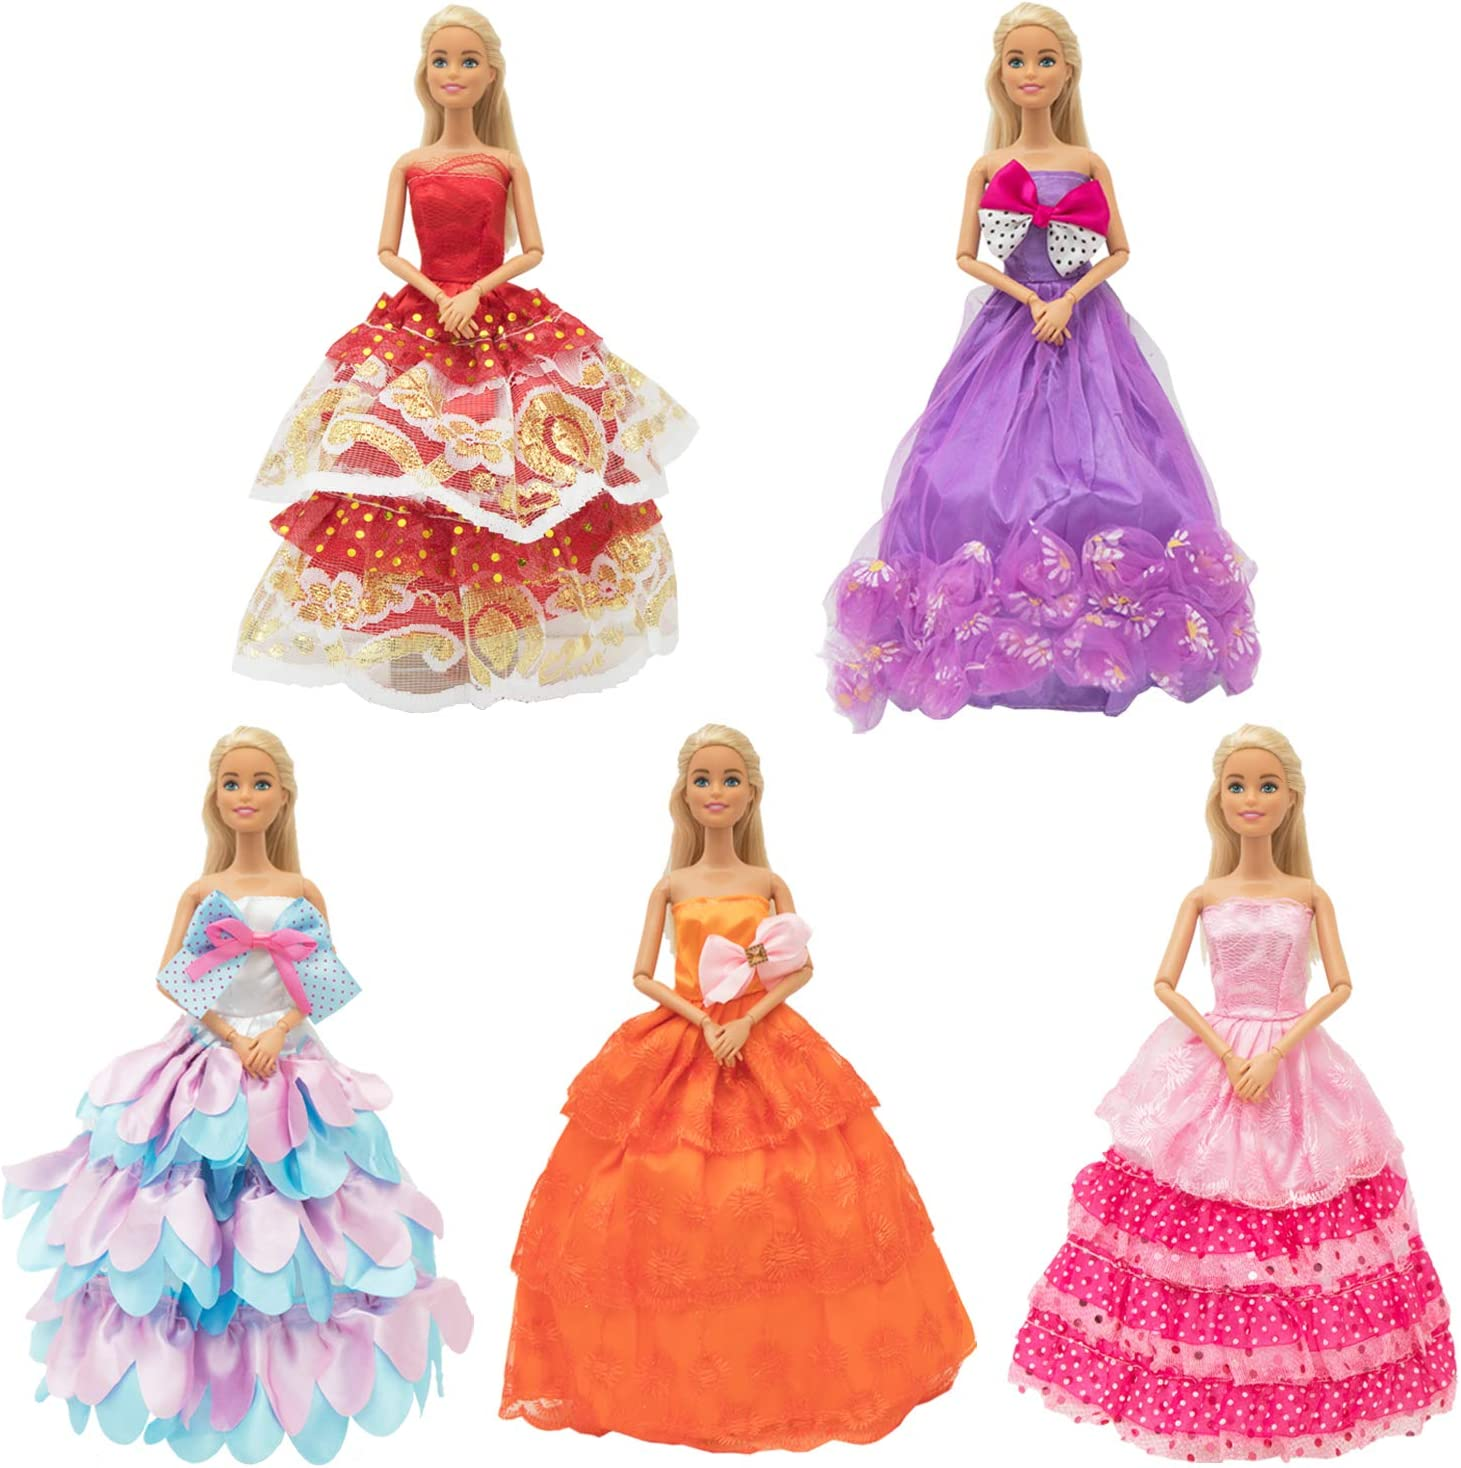 11.5 Inch Barbie Girl Doll Wedding Party Dresses Pack Of 10 Cute Handmade Gowns